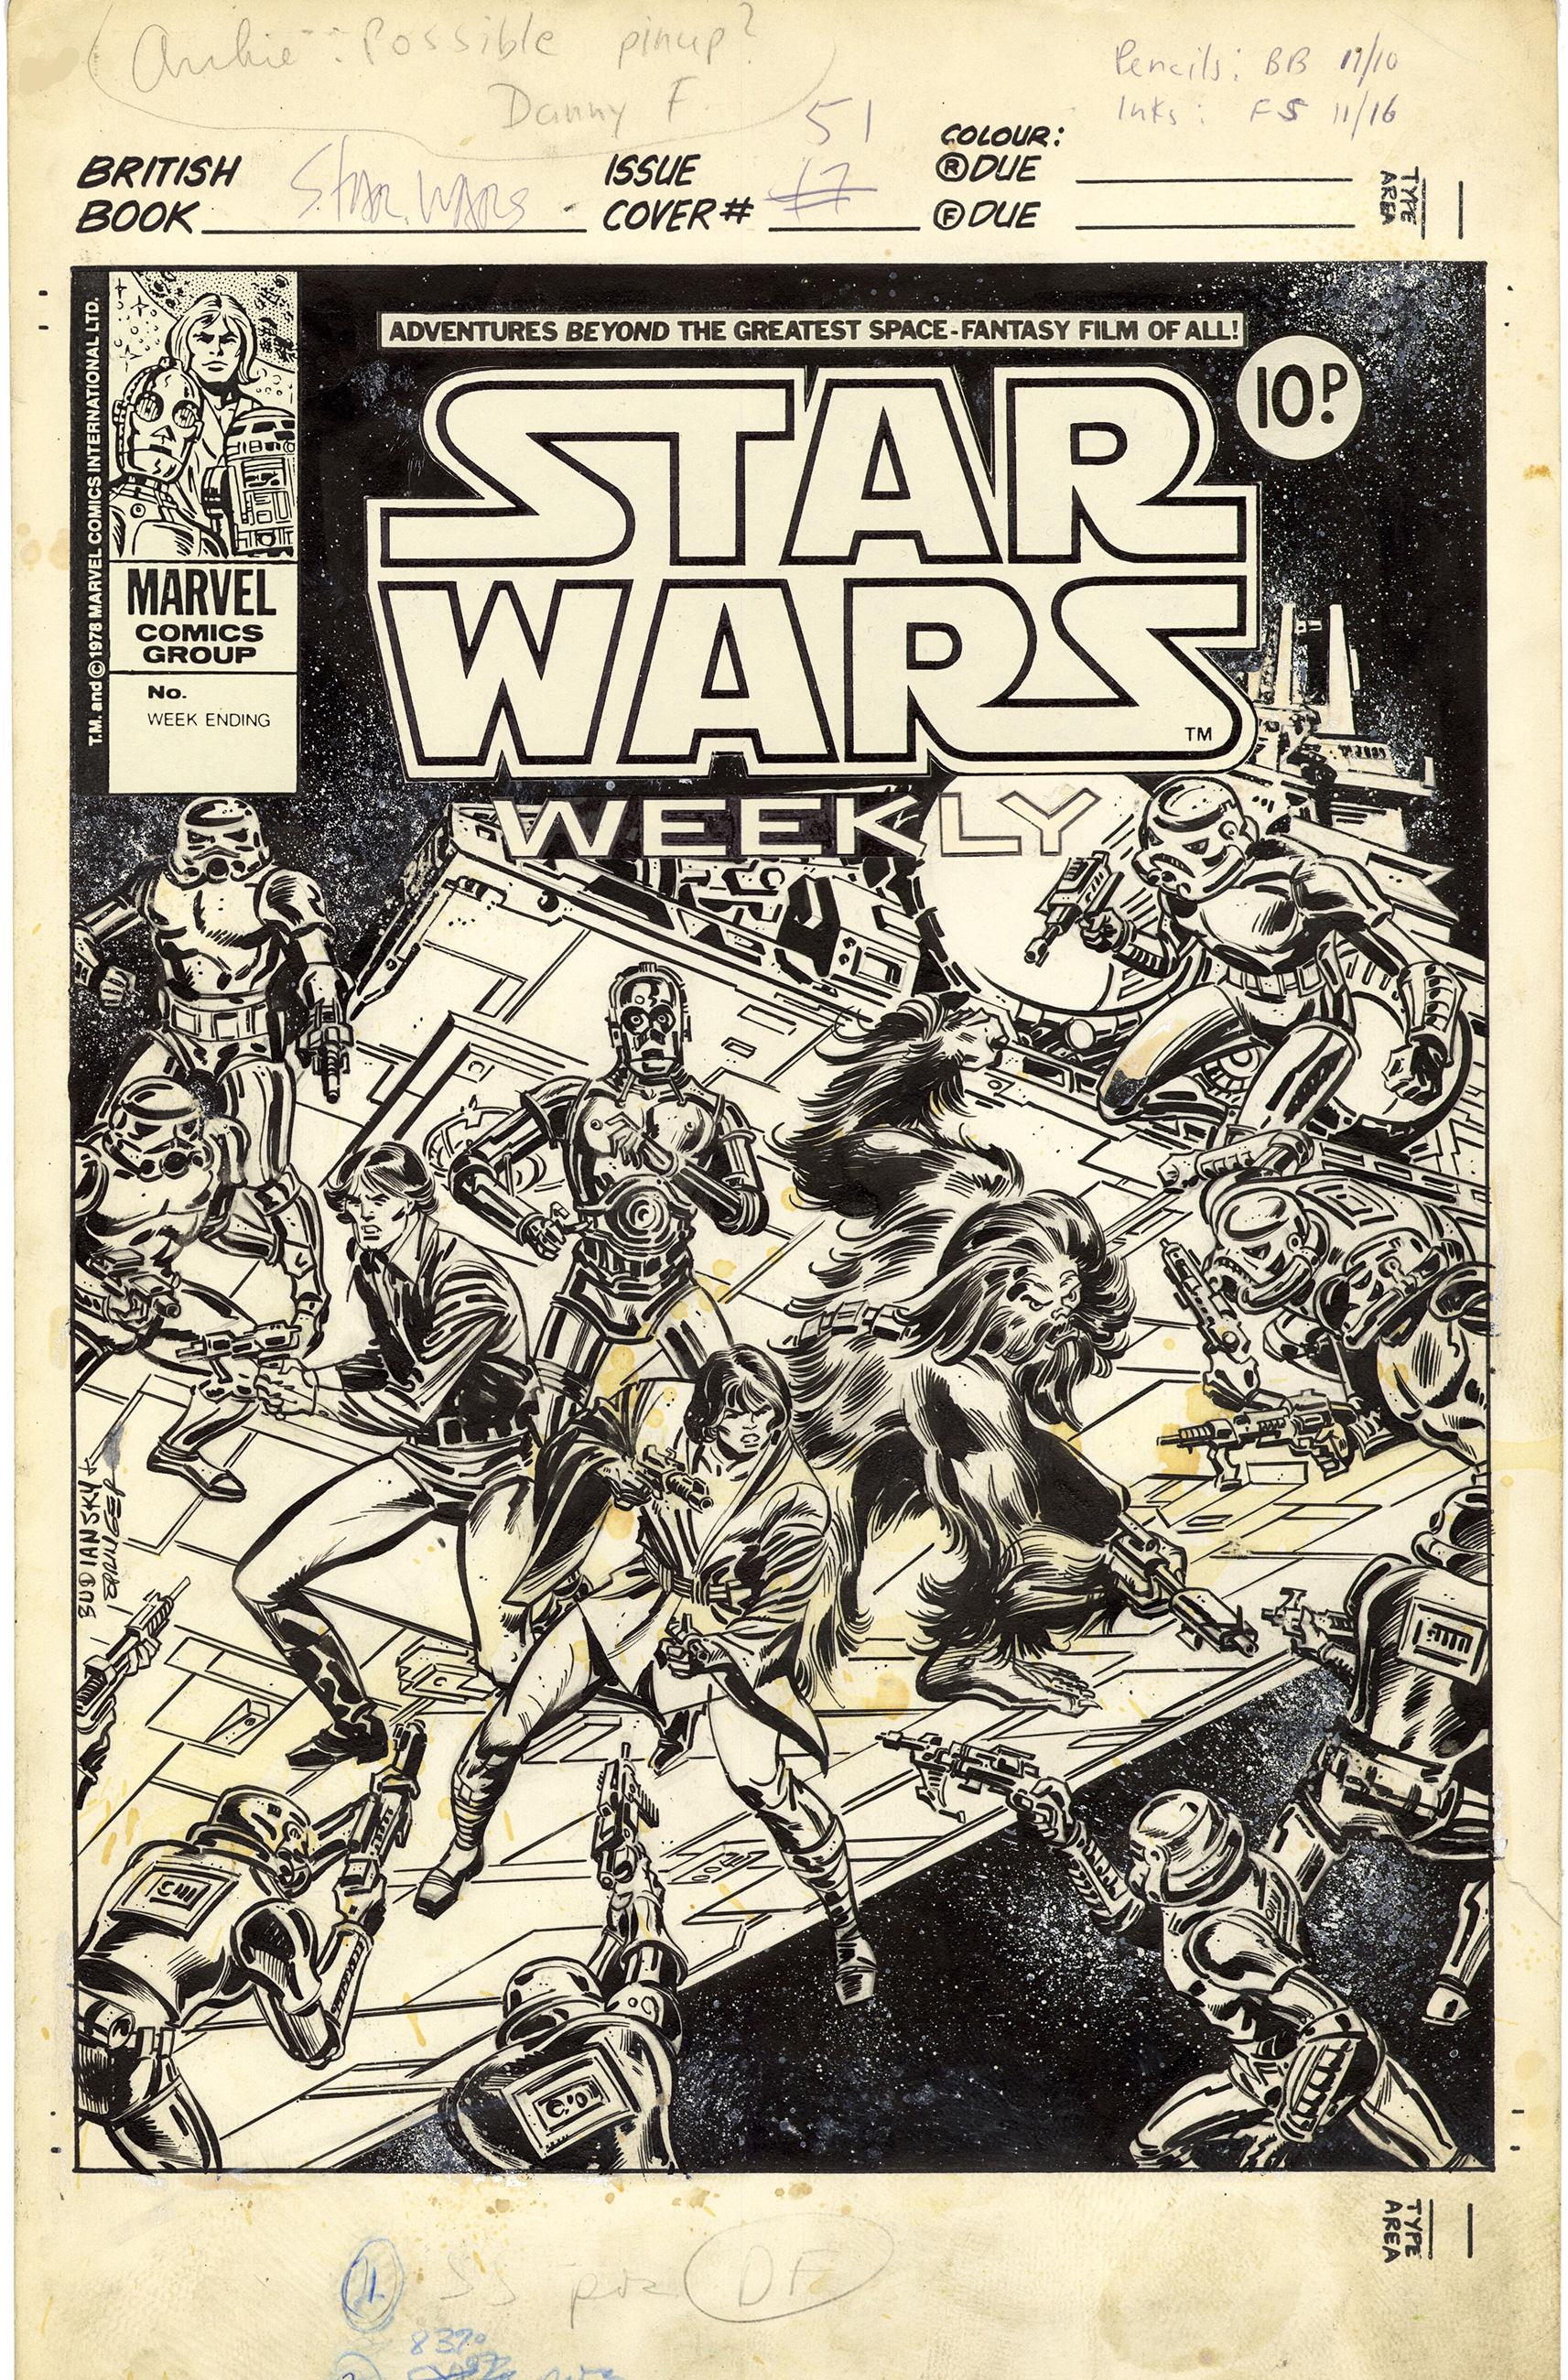 Star Wars Weekly (Unpublished) #51 Cover